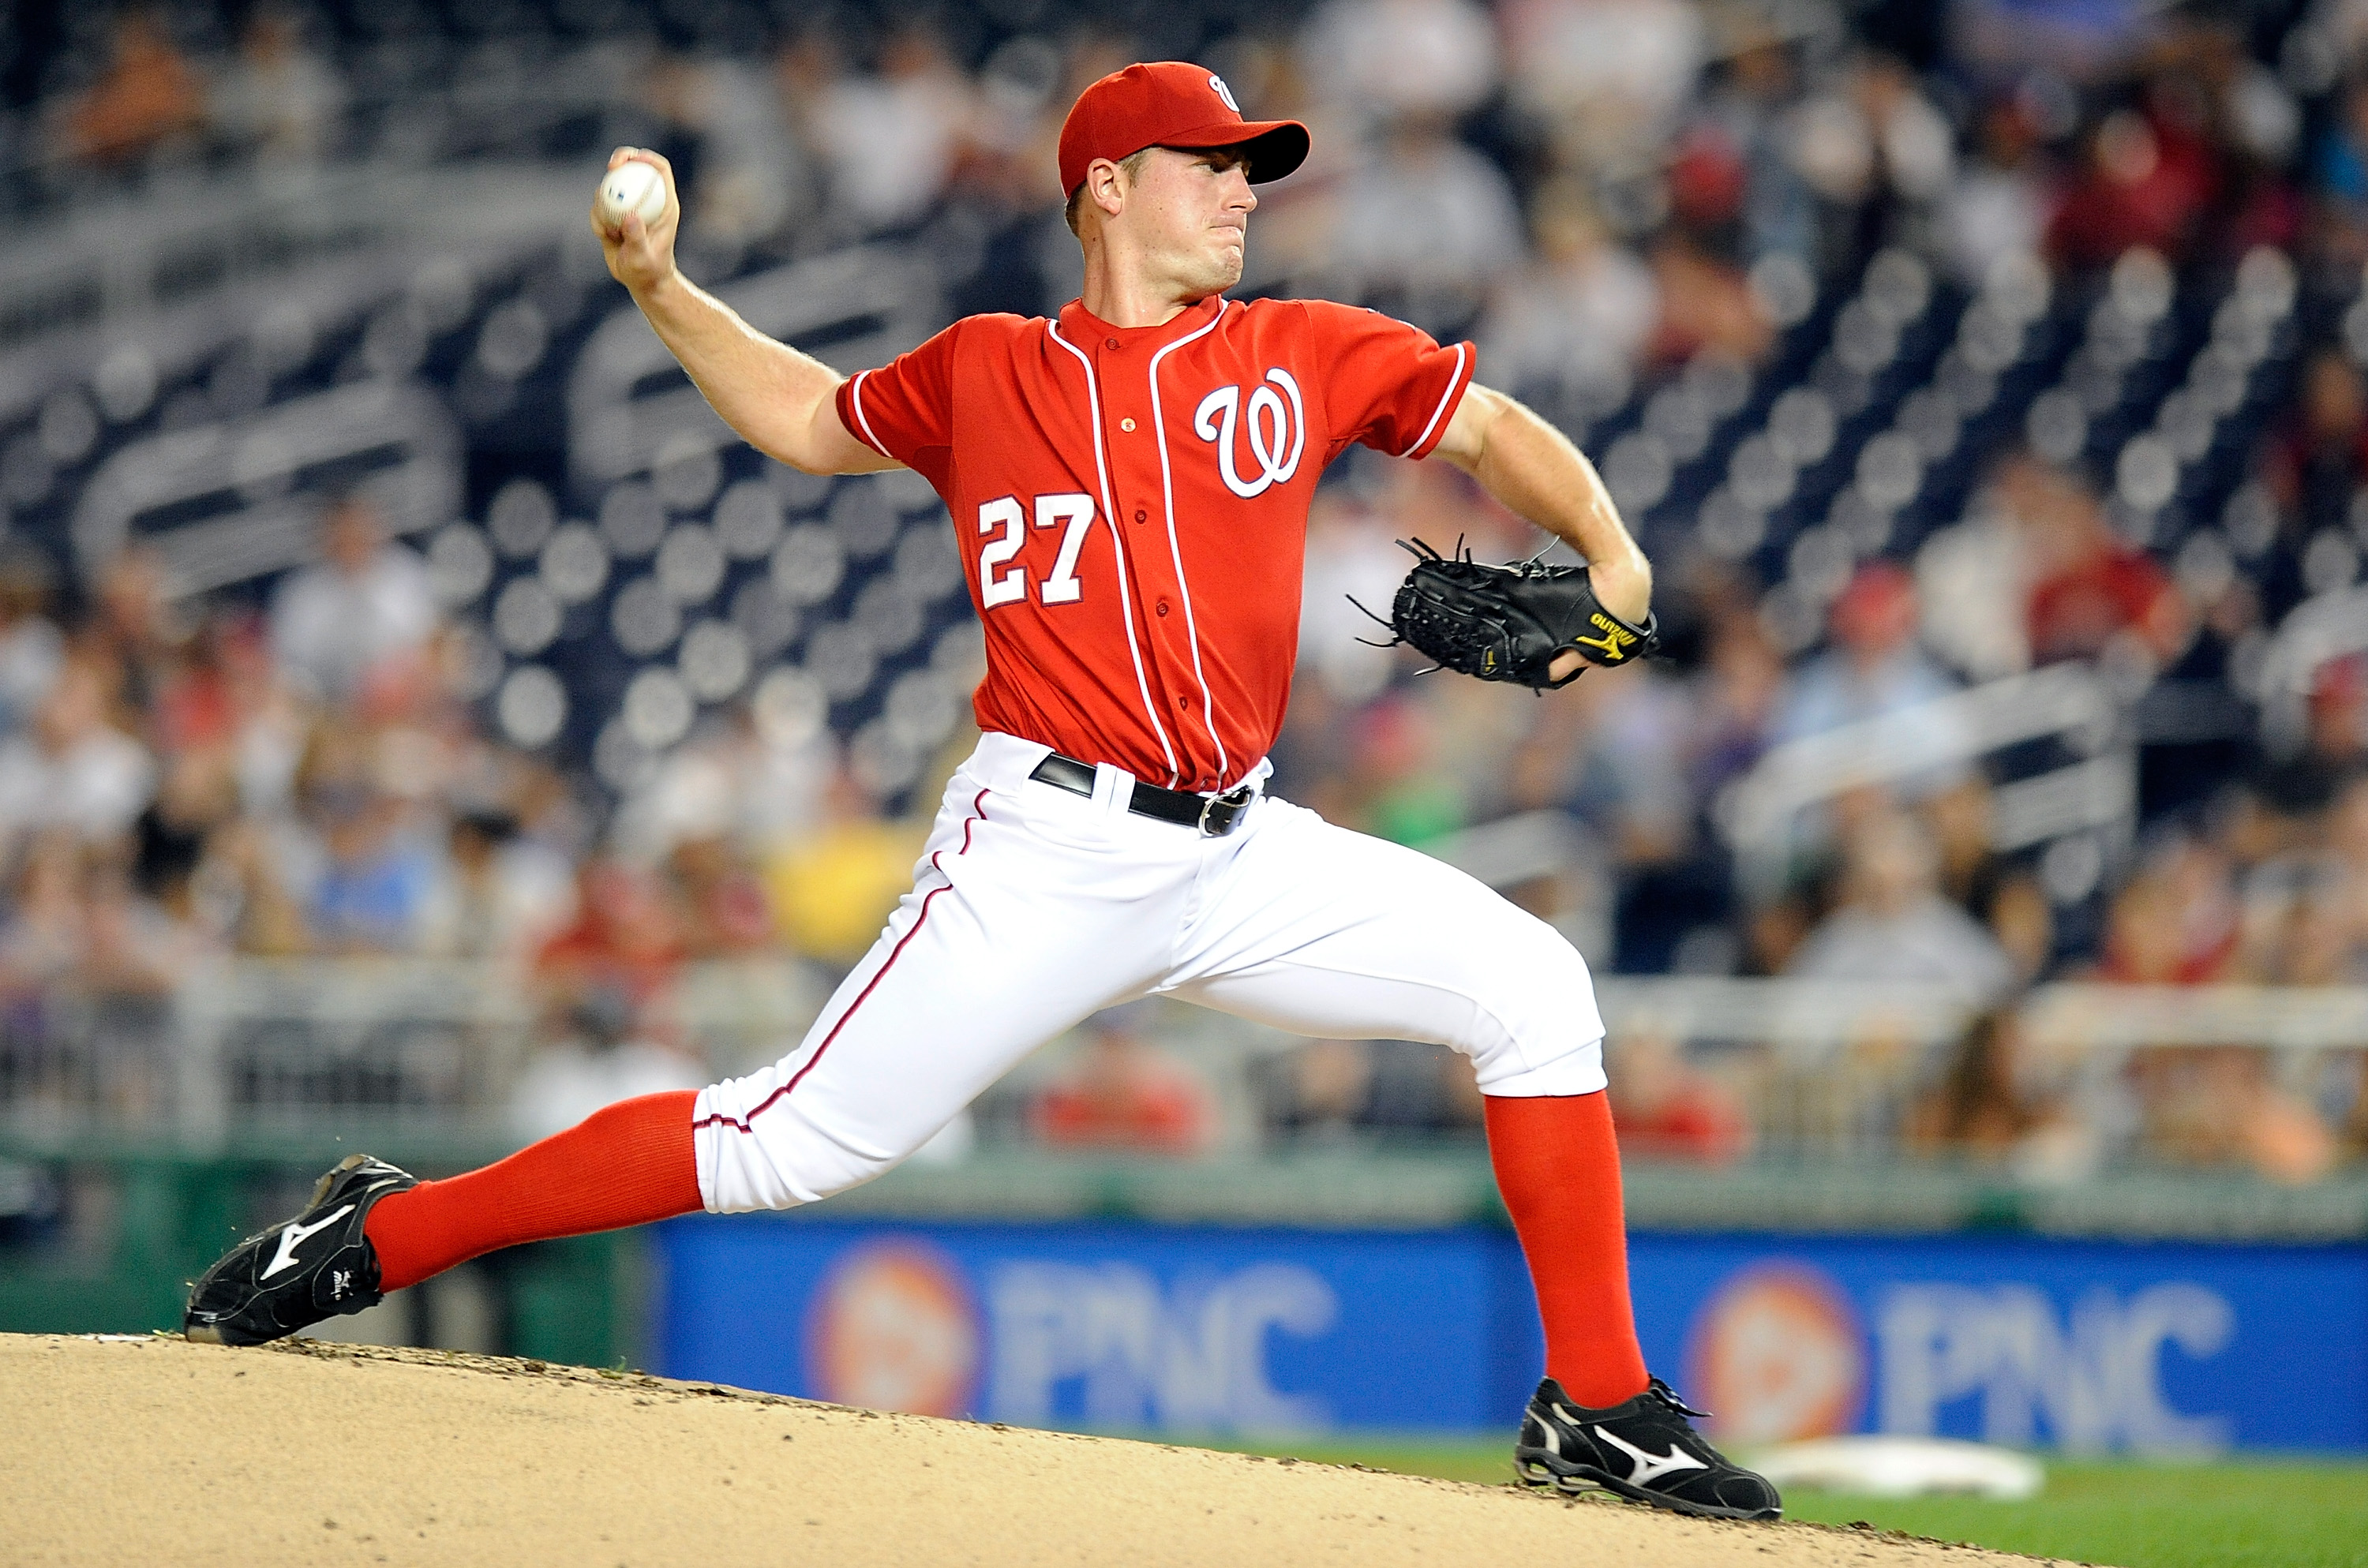 WASHINGTON - SEPTEMBER 24:  Jordan Zimmermann #27 of the Washington Nationals pitches against the Atlanta Braves at Nationals Park on September 24, 2010 in Washington, DC.  (Photo by Greg Fiume/Getty Images)